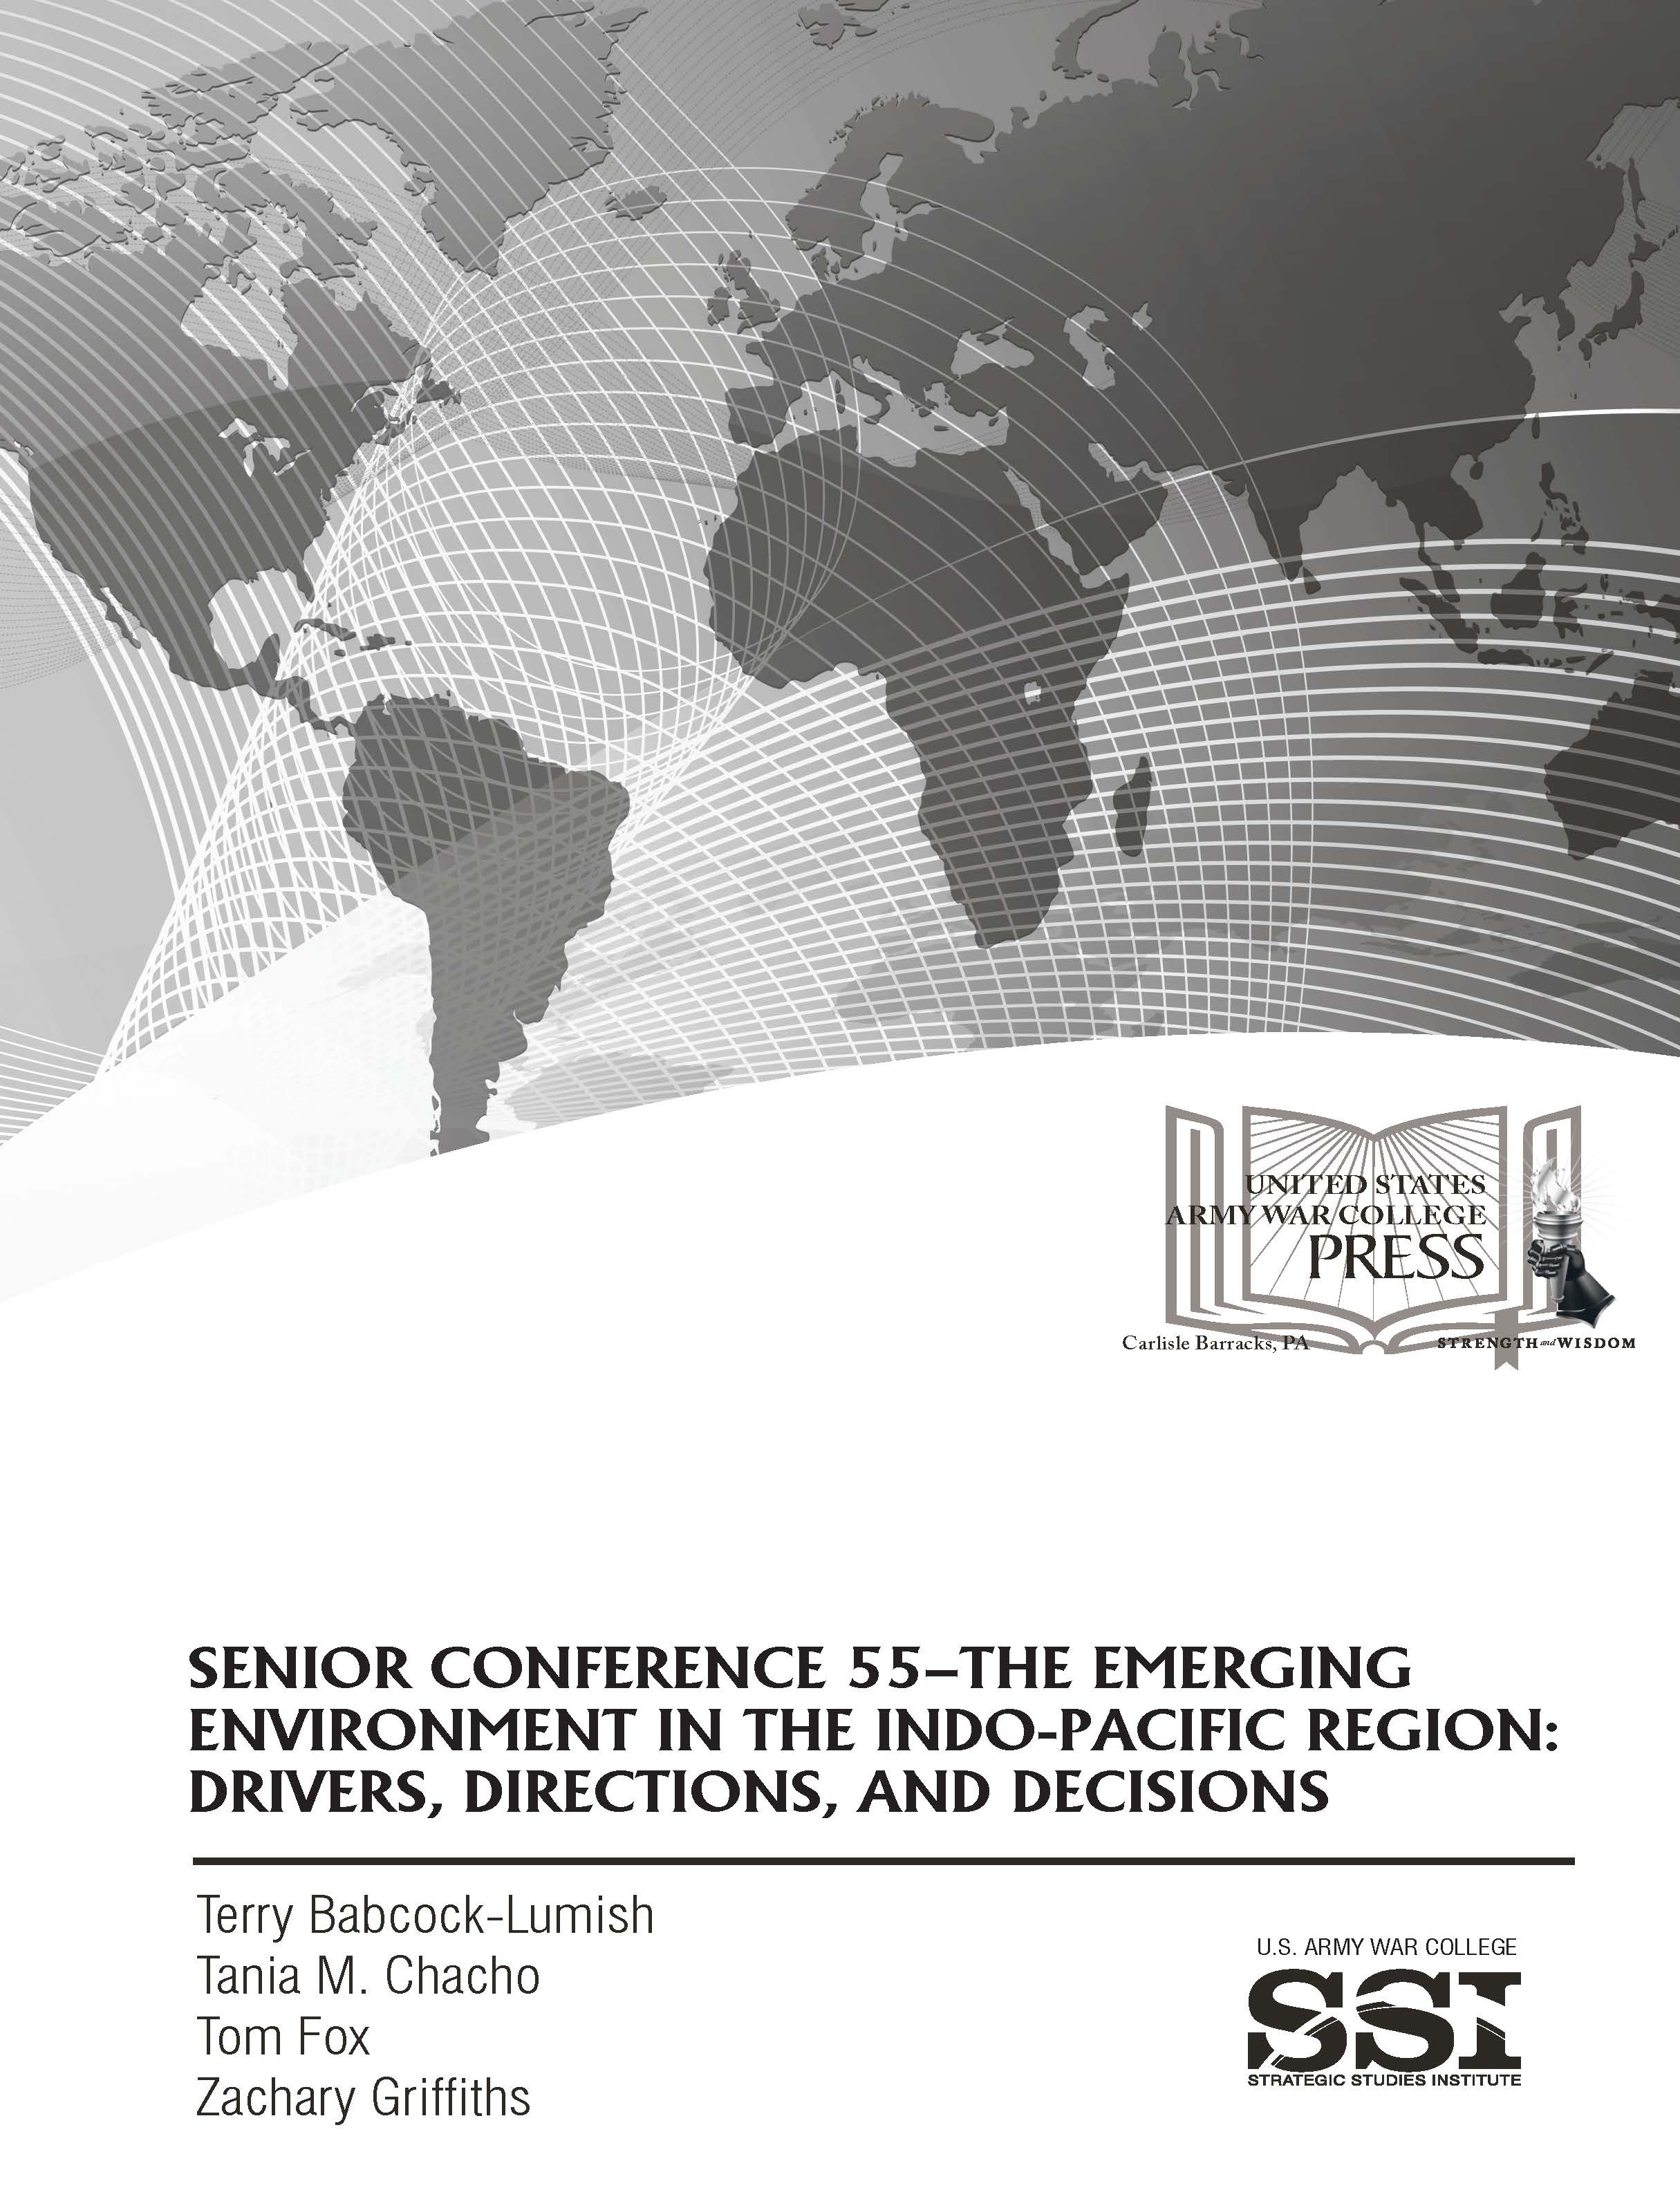 Senior Conference 55—The Emerging Environment in the Indo-Pacific Region: Drivers, Directions, and Decisions